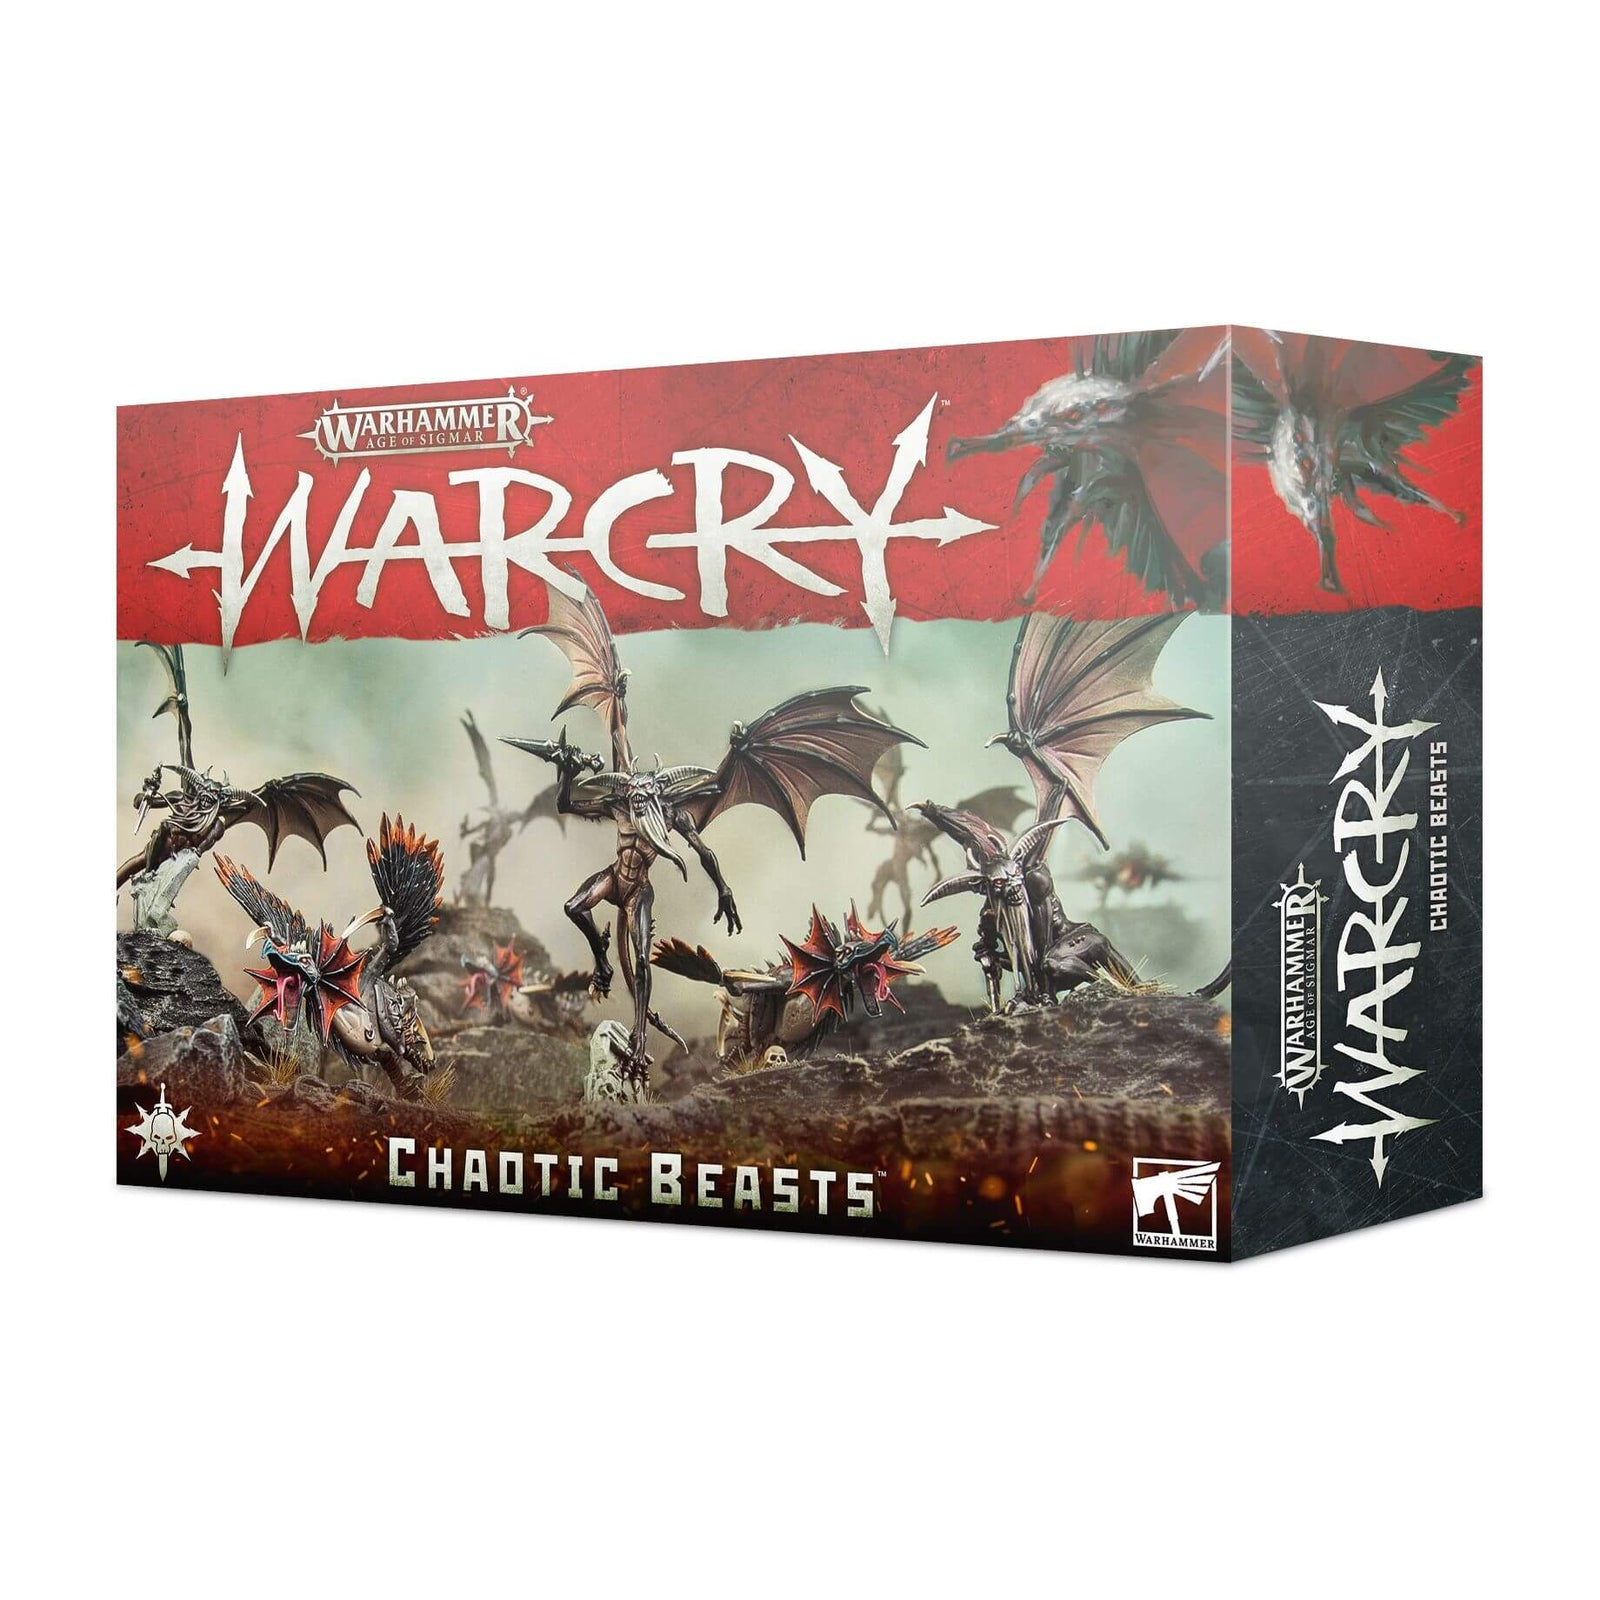 Box Image for Warcry: Chaotic Beasts